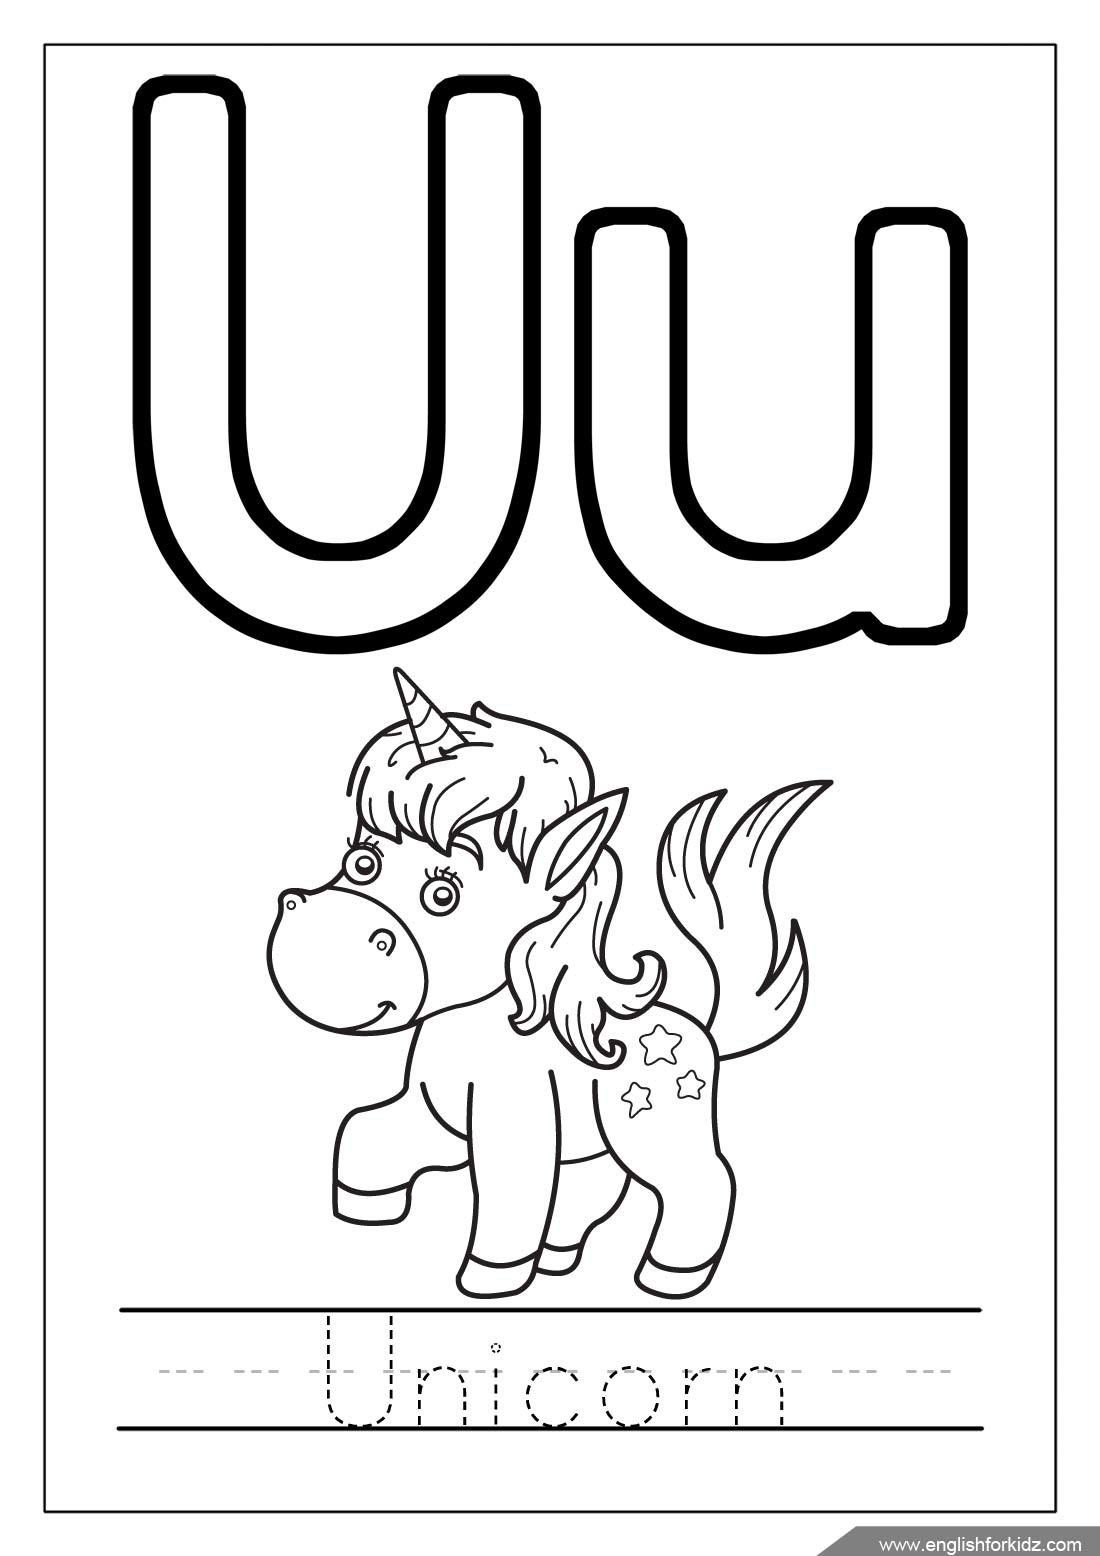 Coloring Pages For U : Letter u umbrella color by number page